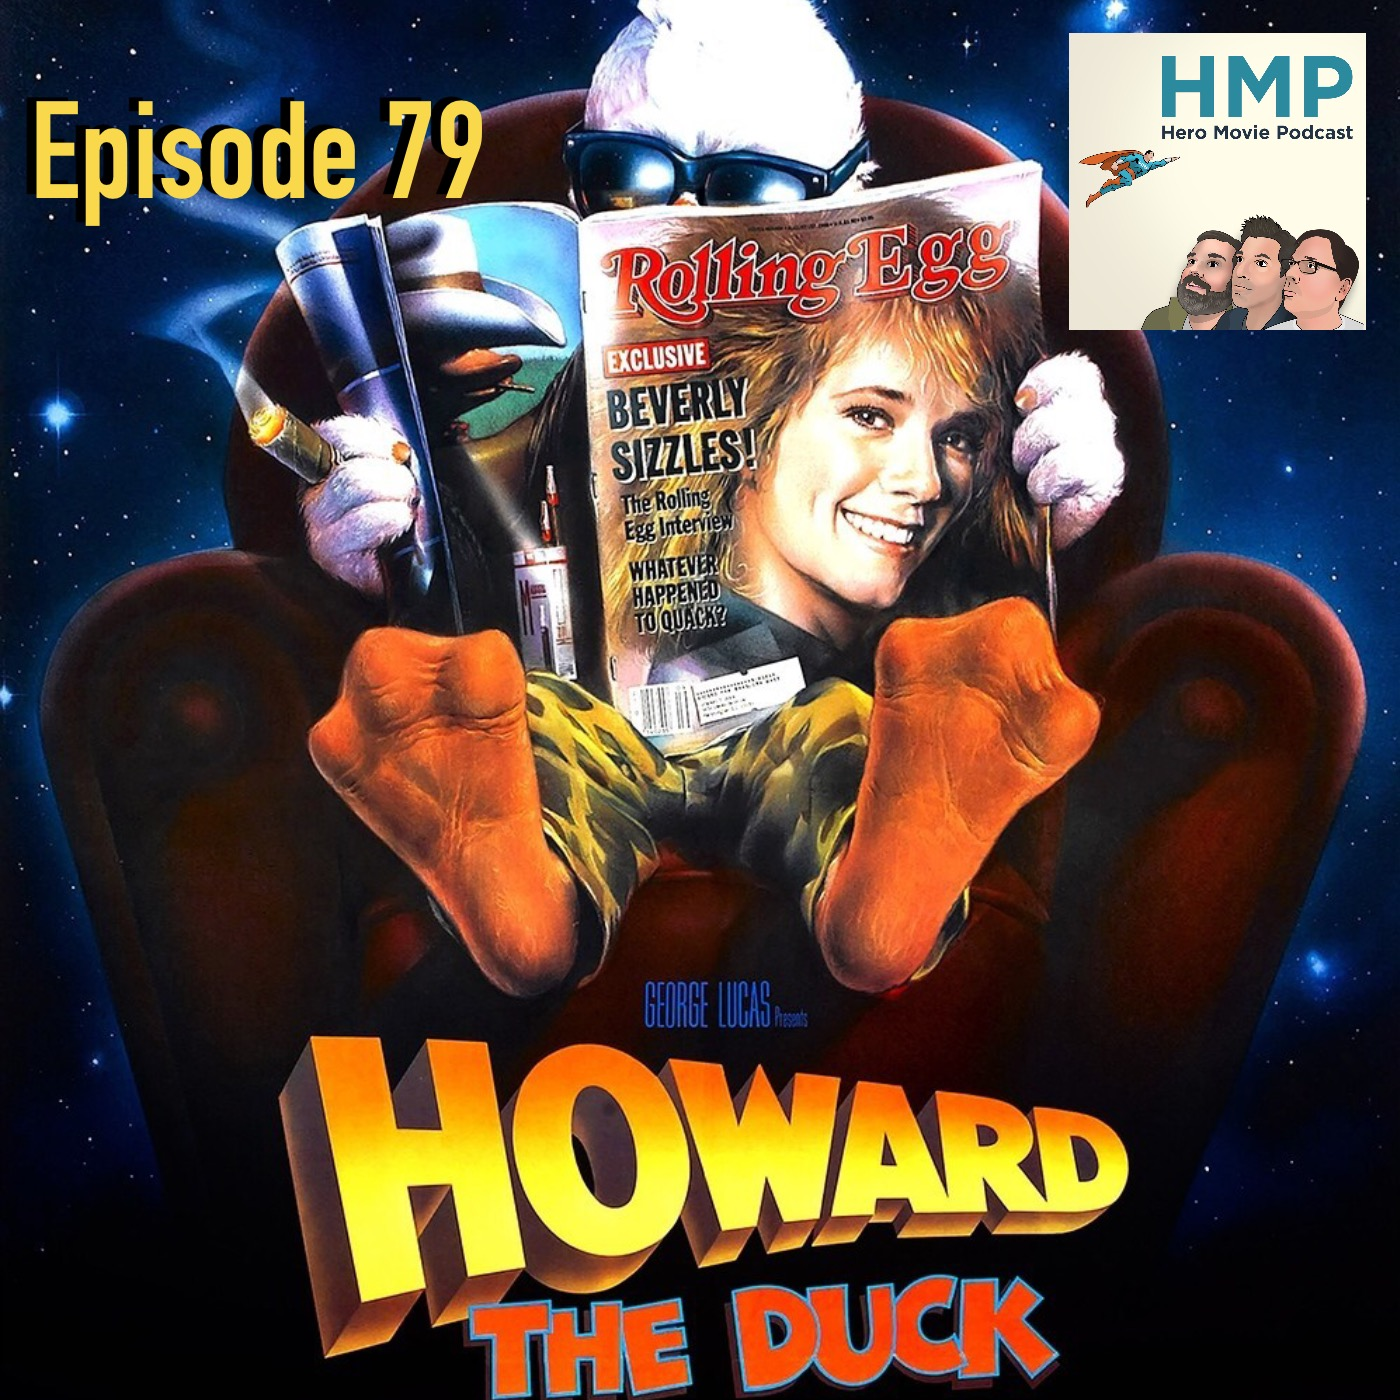 Episode 79- Howard the Duck